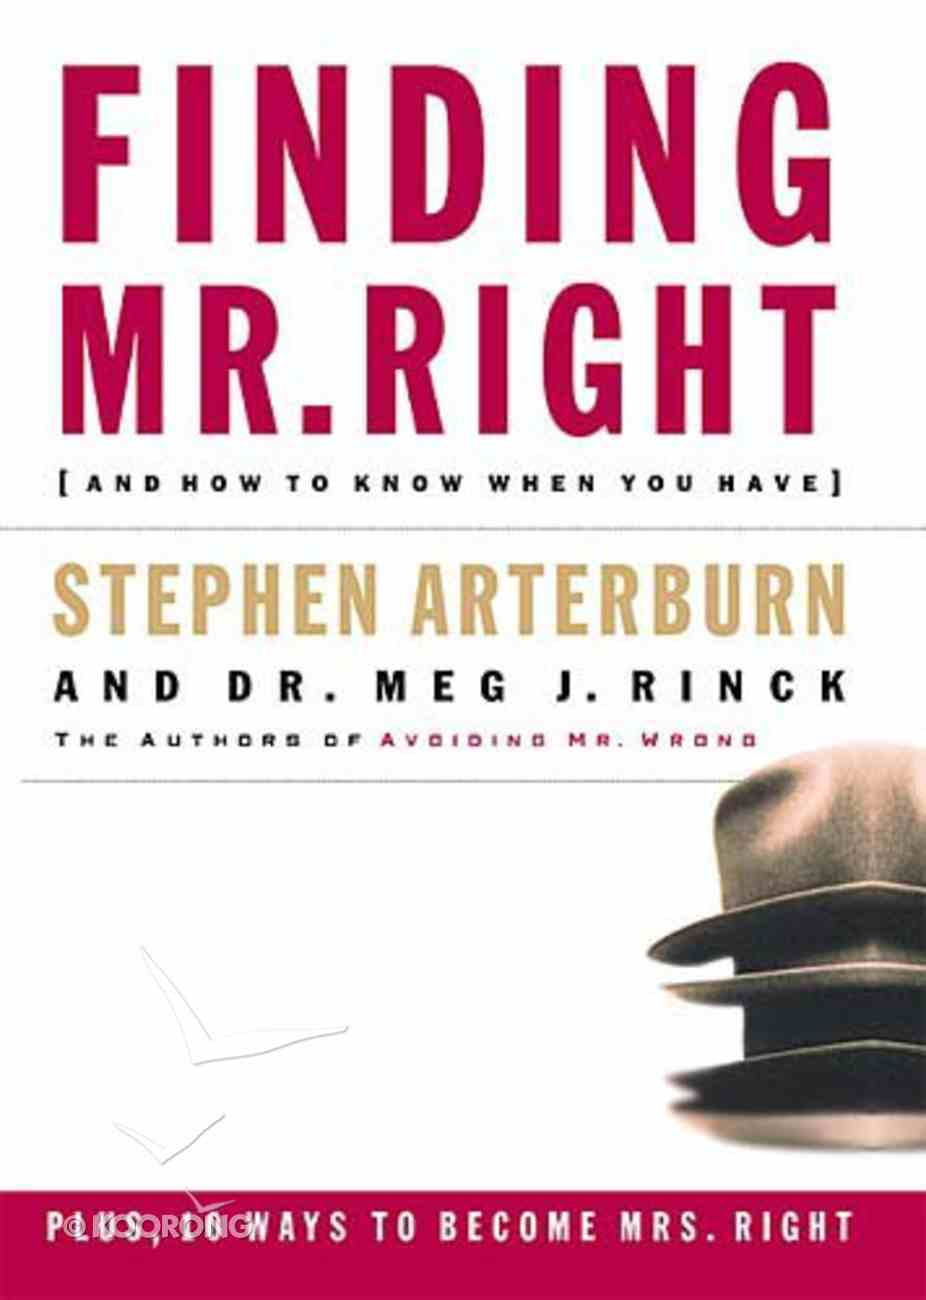 Finding Mr. Right Paperback